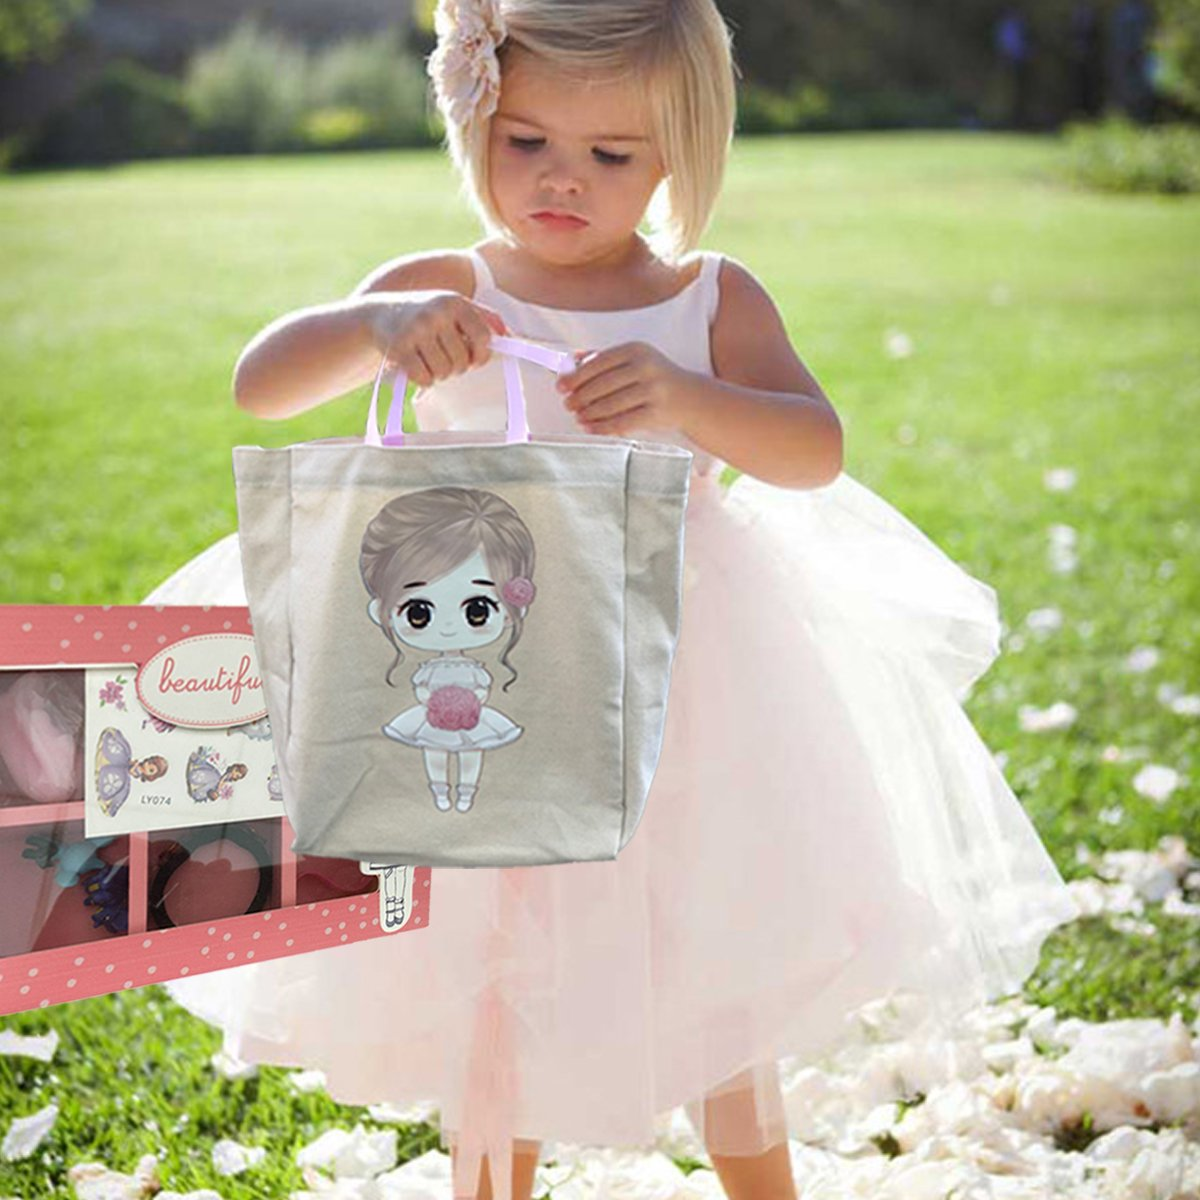 FLOWER Girl Wedding Birthday Christmas Favors Gift Tote Bag Cotton with Beautiful Wood Trinket Box full of toys favors girls jewelry headbands by Global Huntress (Image #3)